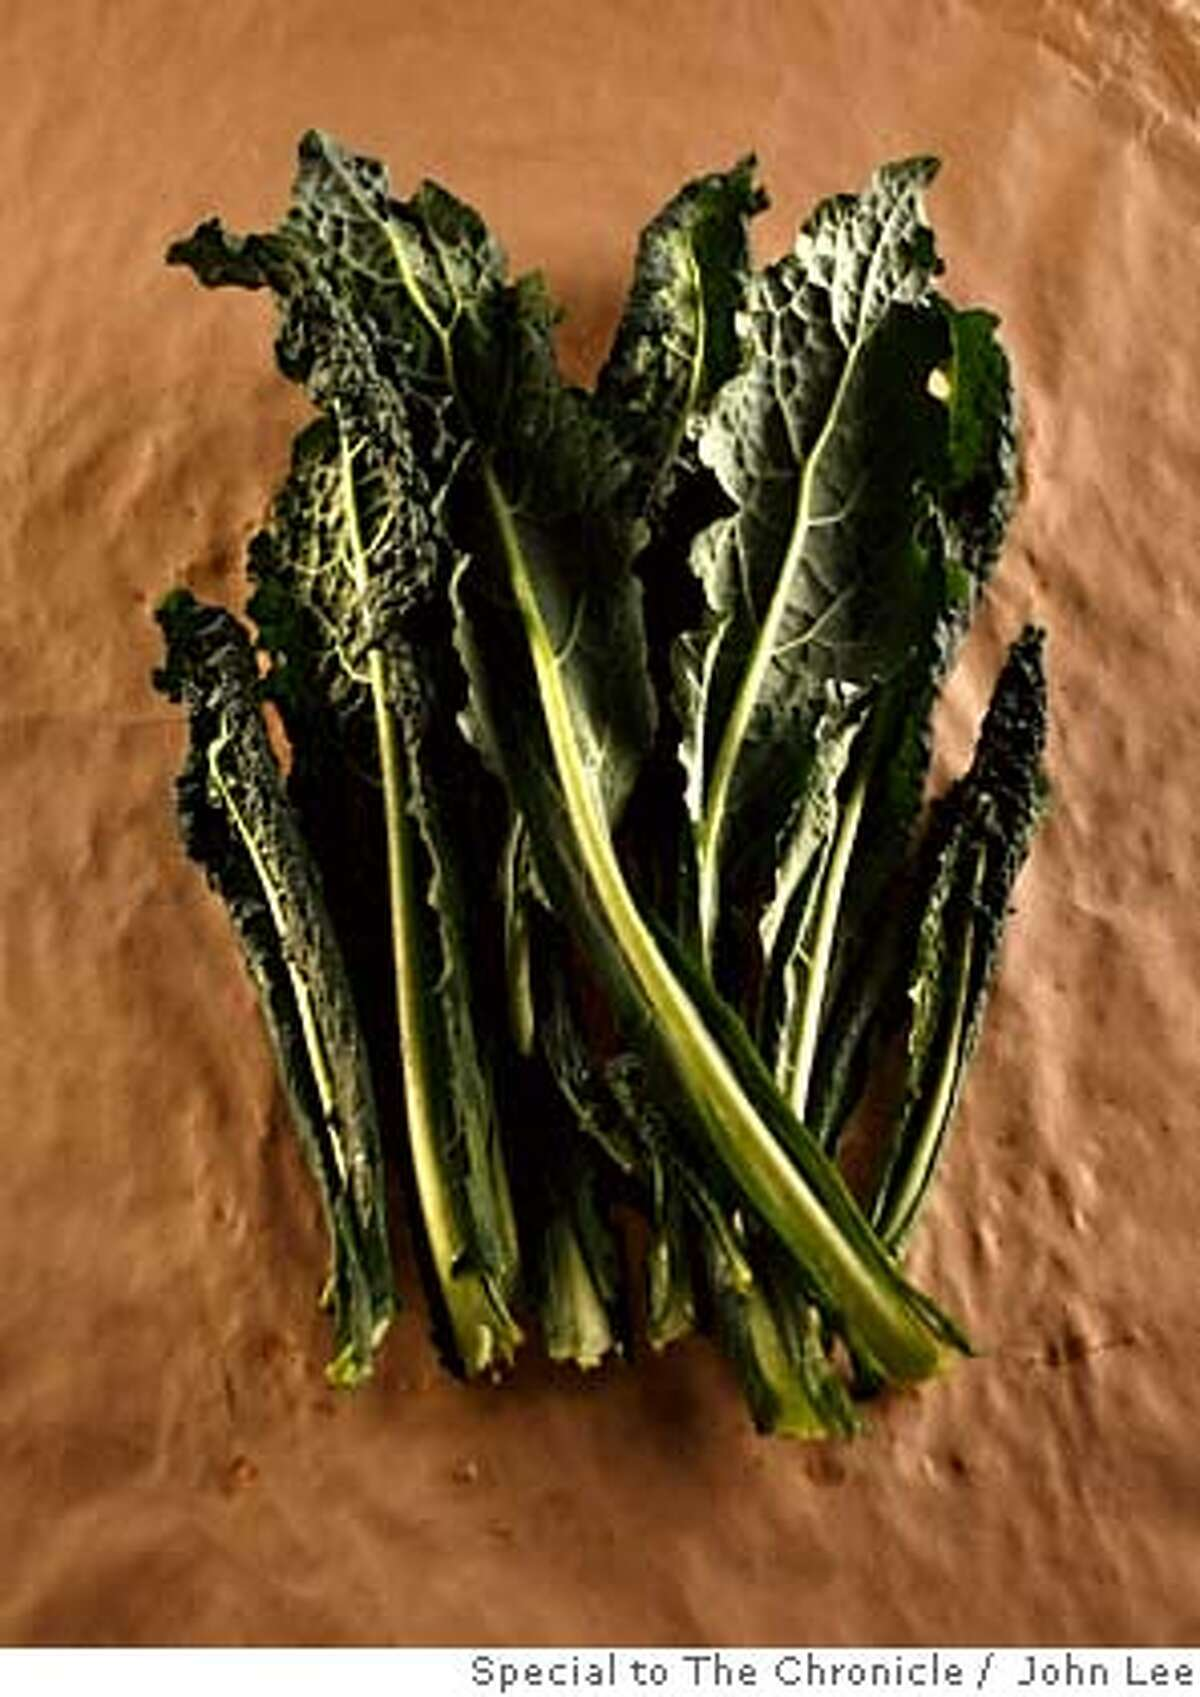 SEASONAL06_KALE_01_JOHNLEE.JPG Kale ingredients and individuals. By JOHN LEE/SPECIAL TO THE CHRONICLE Ran on: 02-20-2008 Sturdy Tuscan kale is also known as dinosaur kale, cavolo nero and lacinato kale.